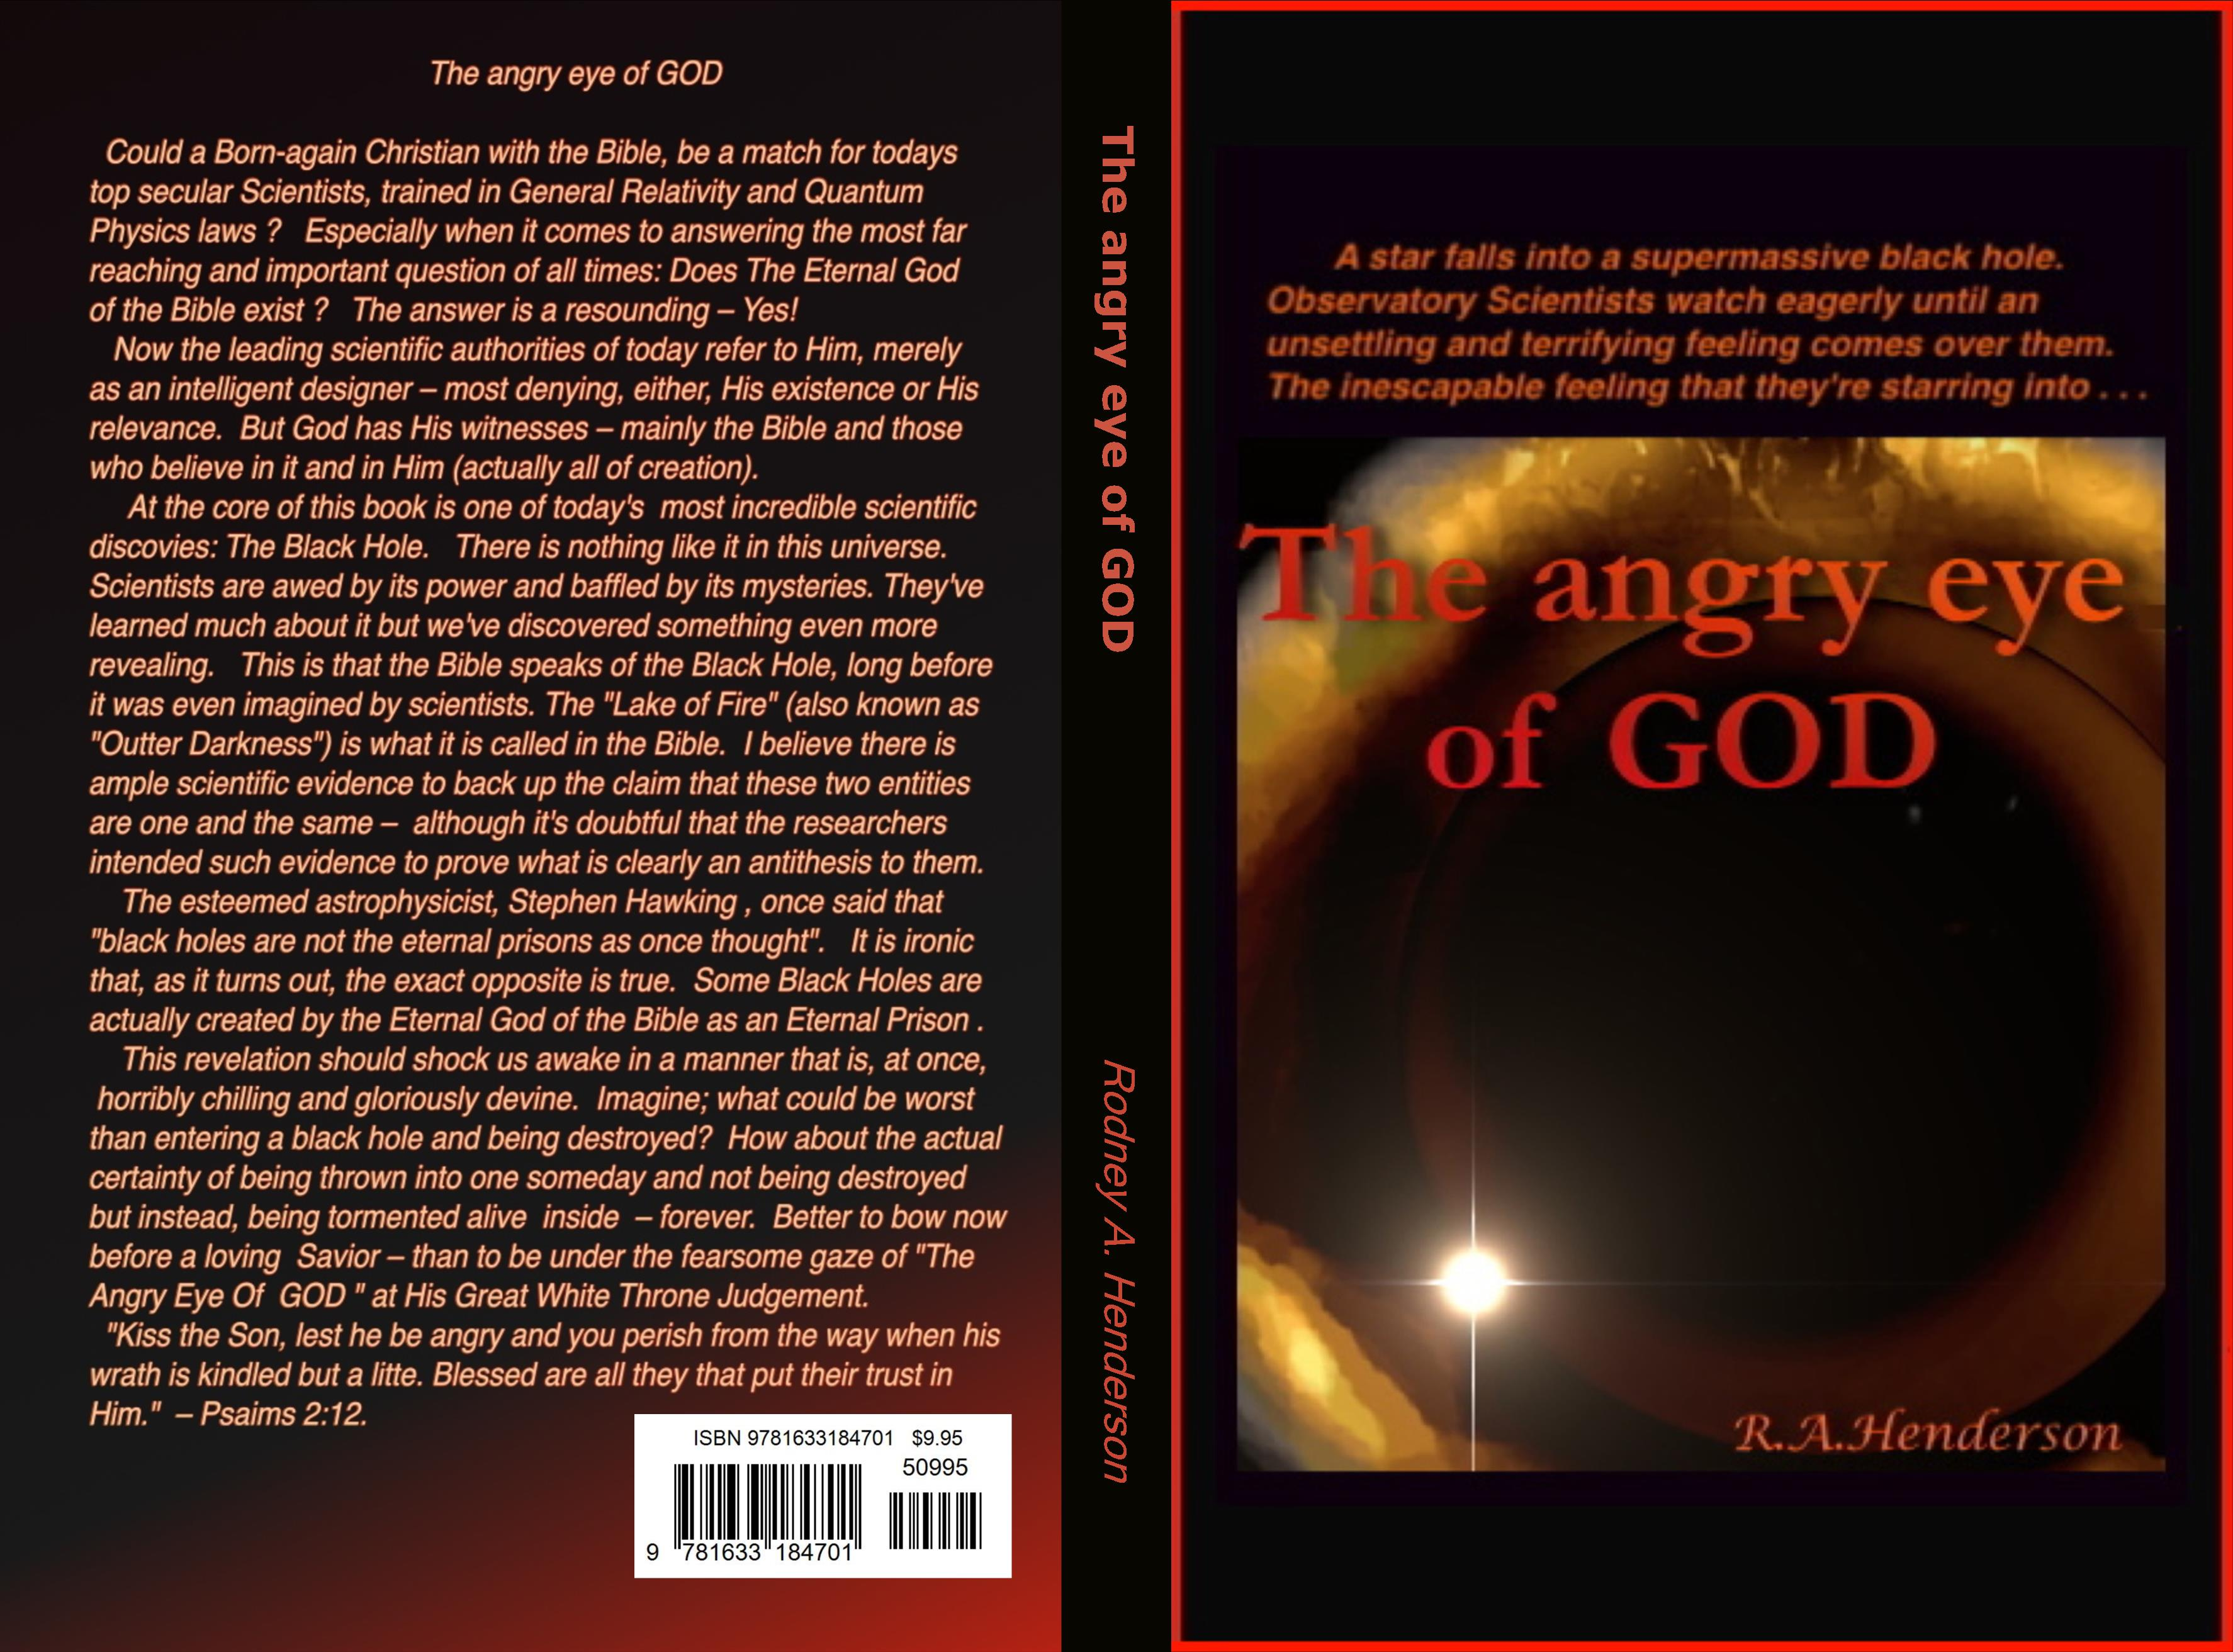 The angry eye of GOD cover image